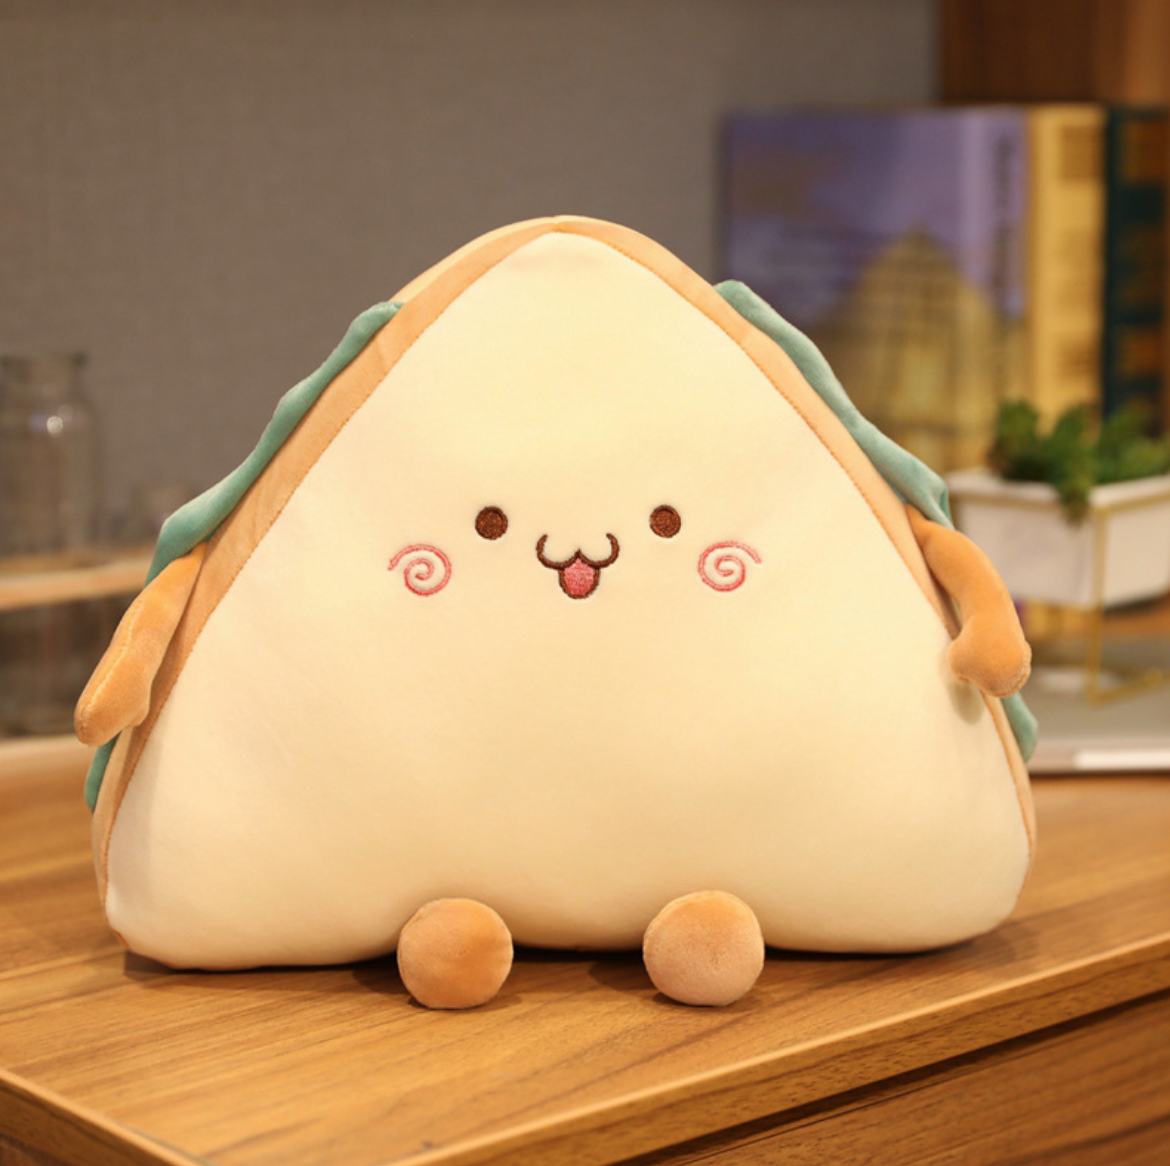 Cute Sandwich Plush